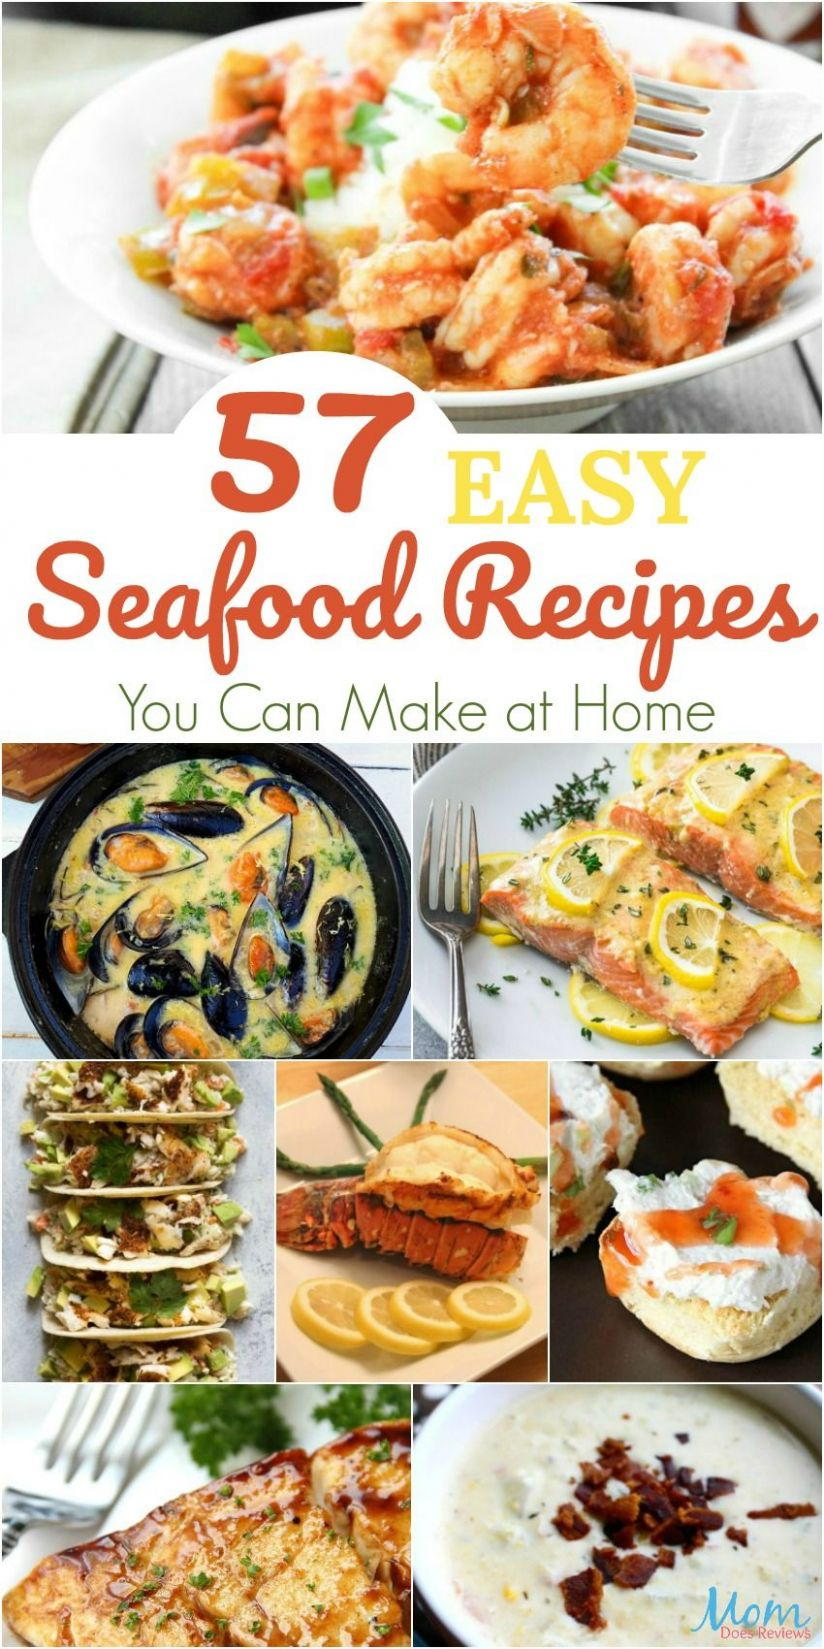 10 Easy Seafood Recipes You Can Make at Home | Seafood recipes ..